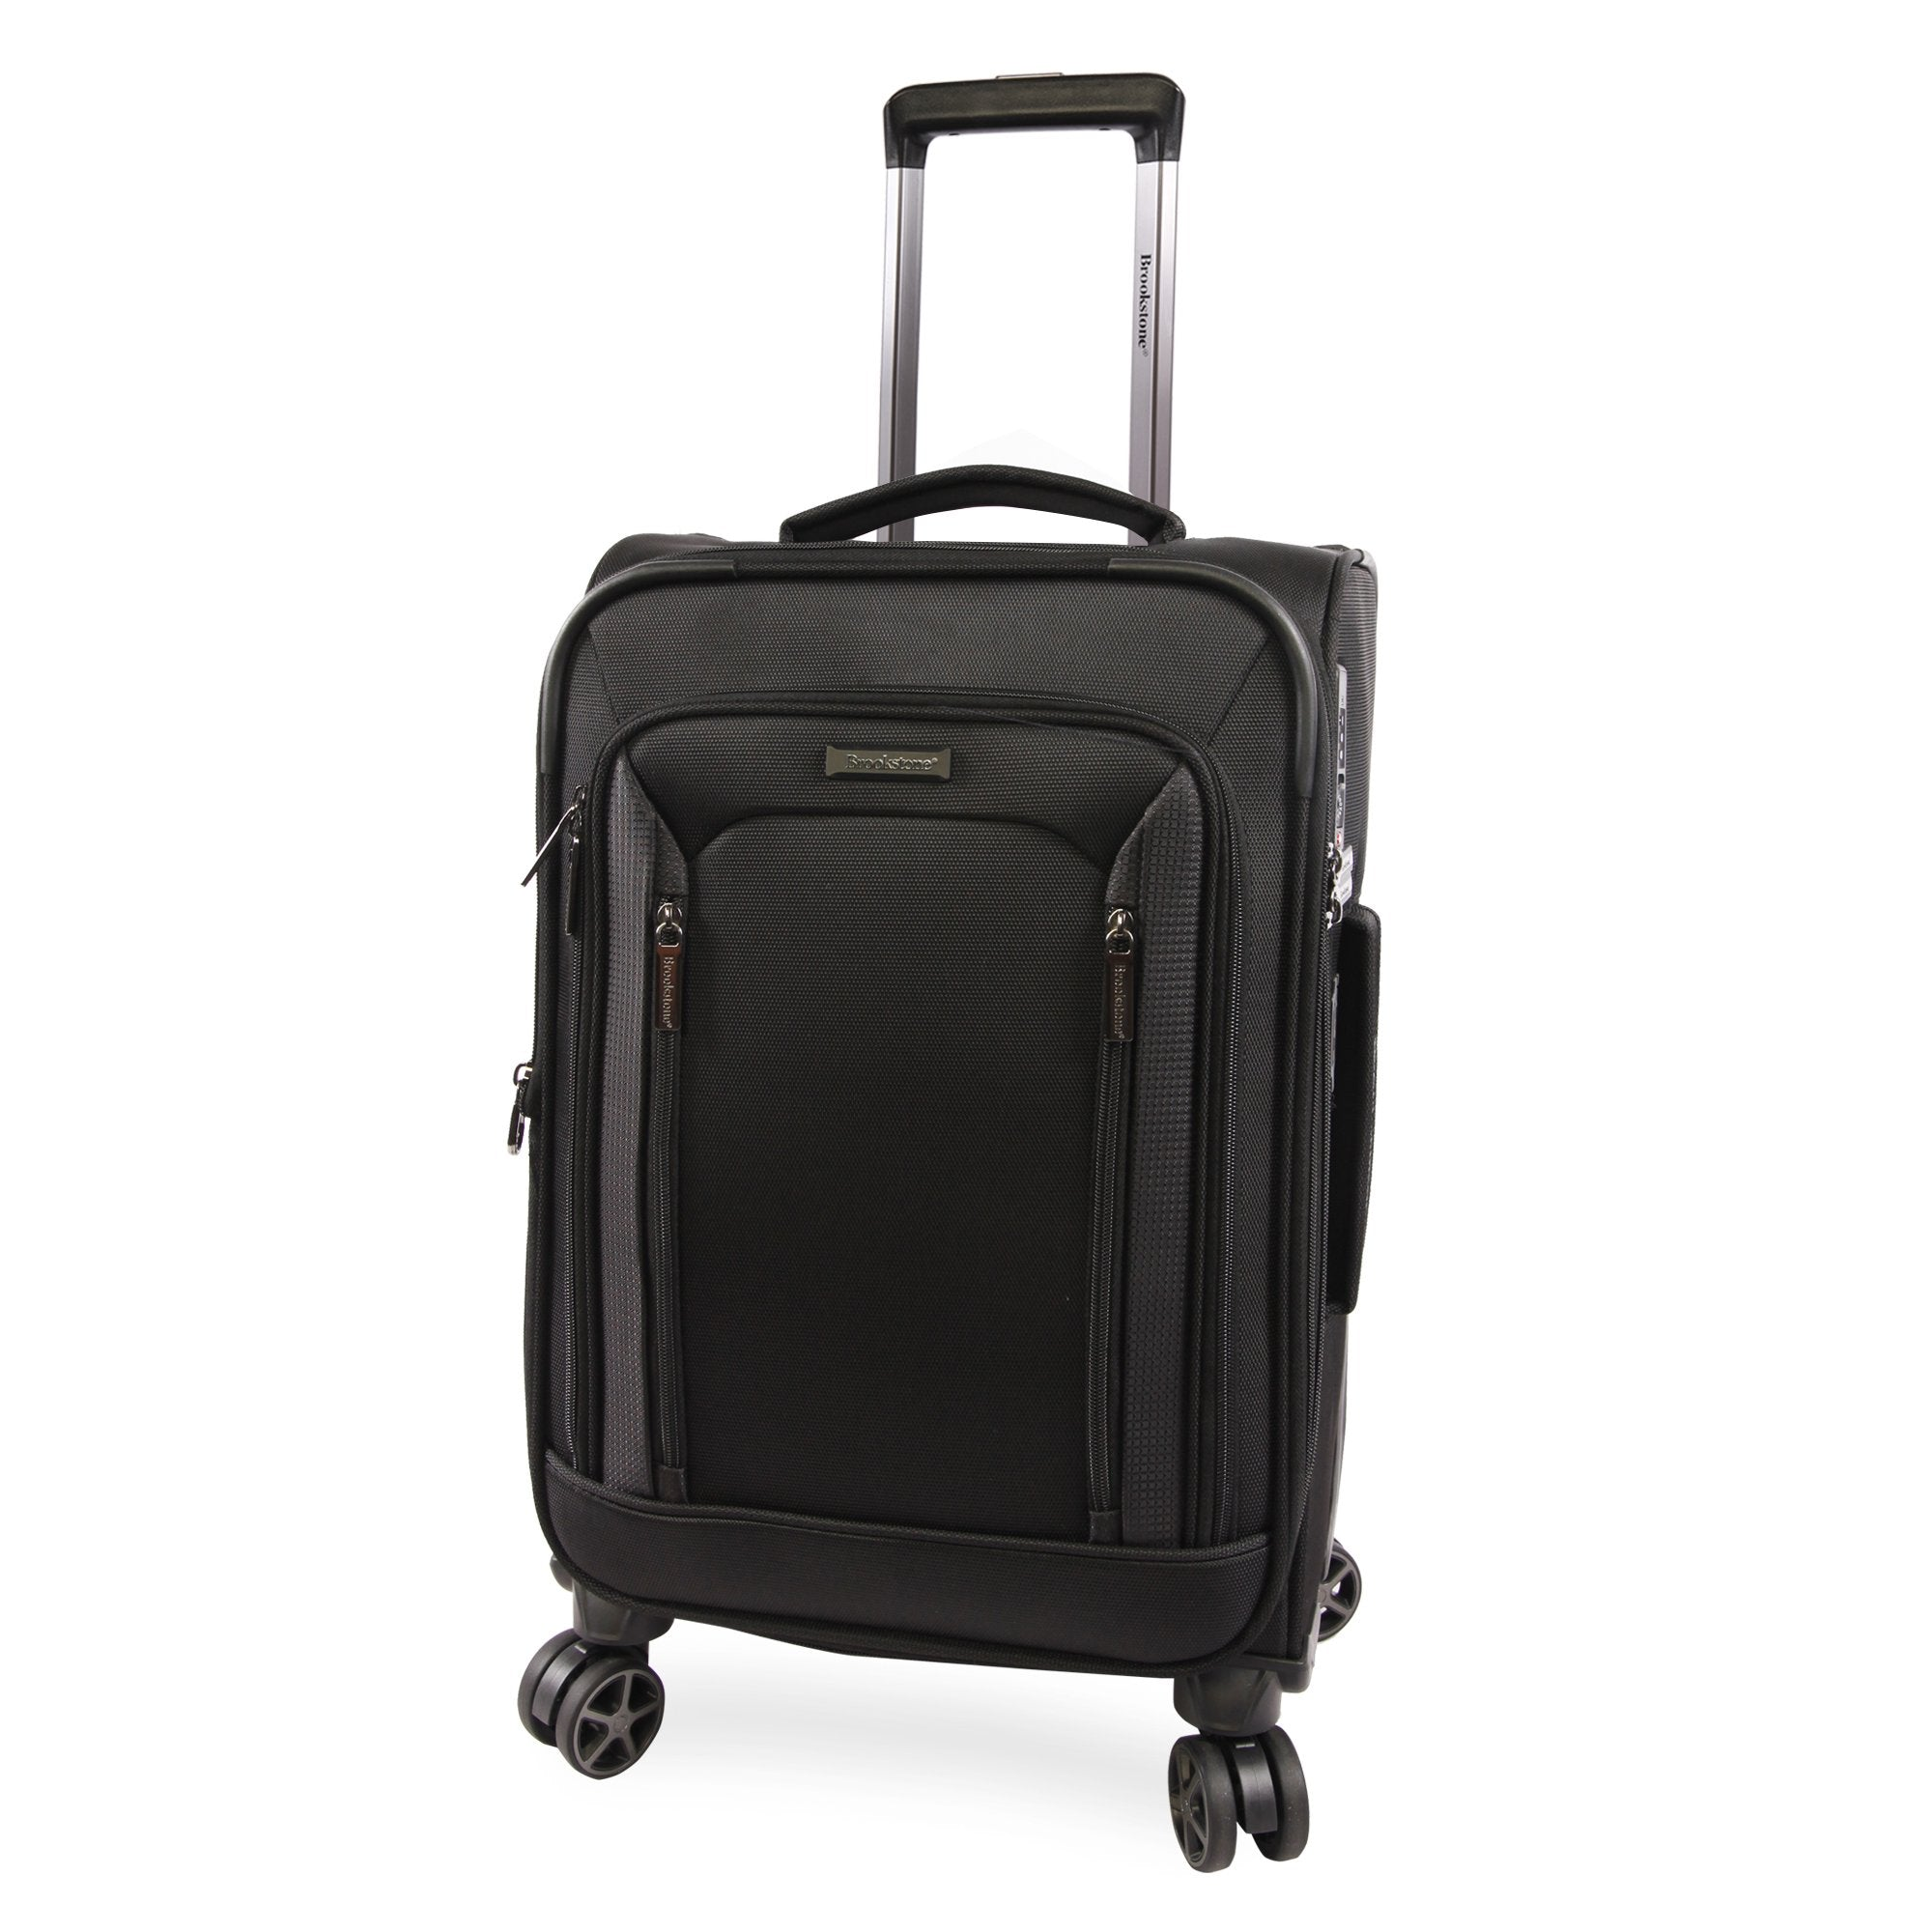 """American Traveler Brookstone Elswood 21"""" Softside Carry-On Spinner in Black, Size 21 Inch"""